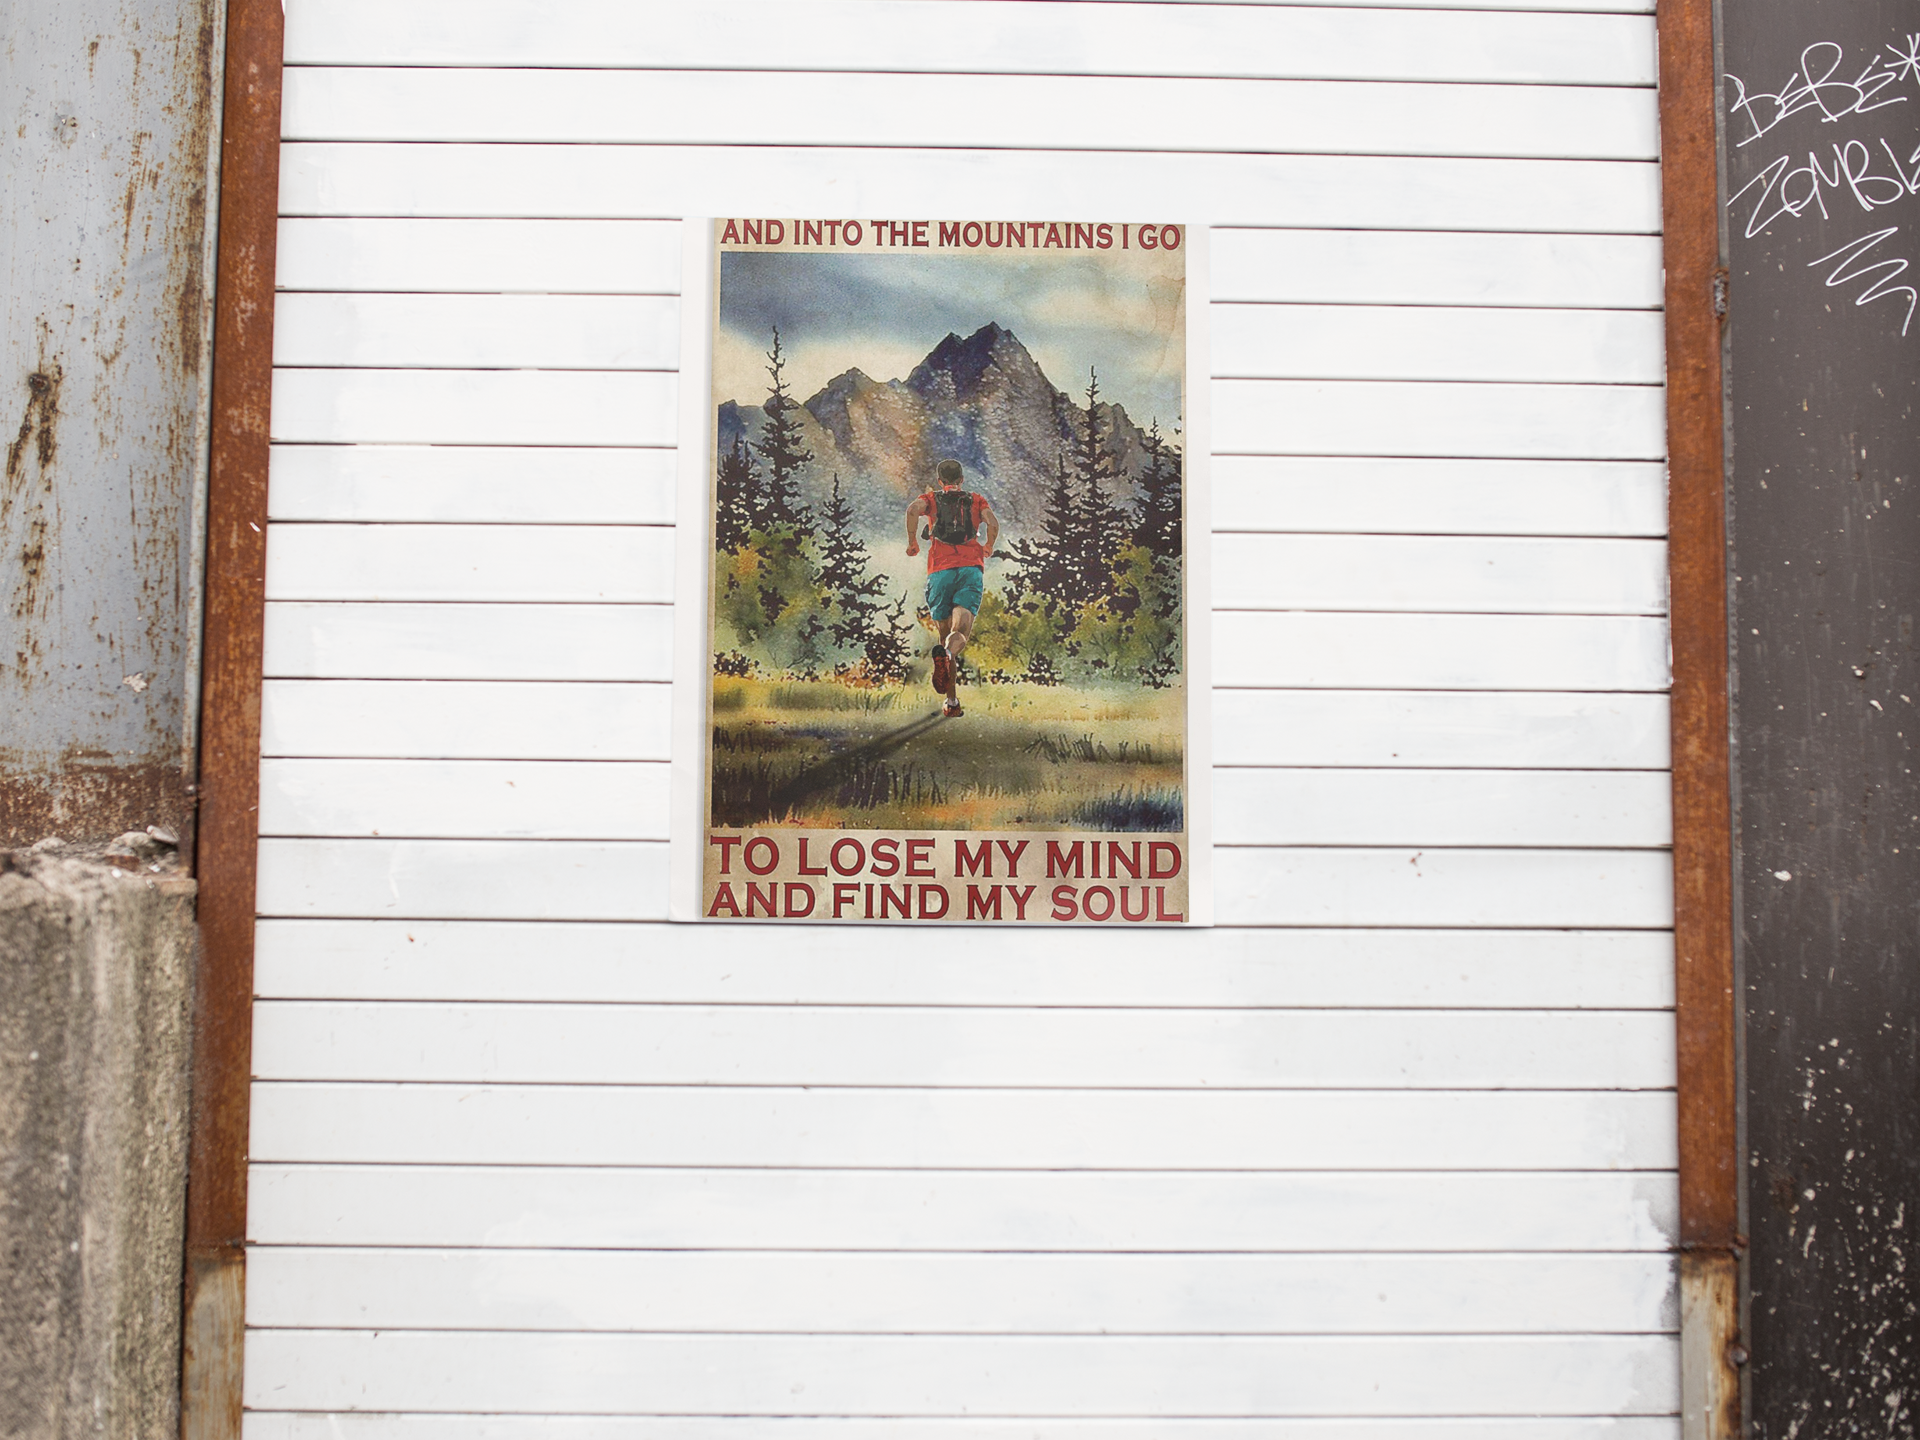 Running And into the mountains I go to lose my mind and find my soul poster 19